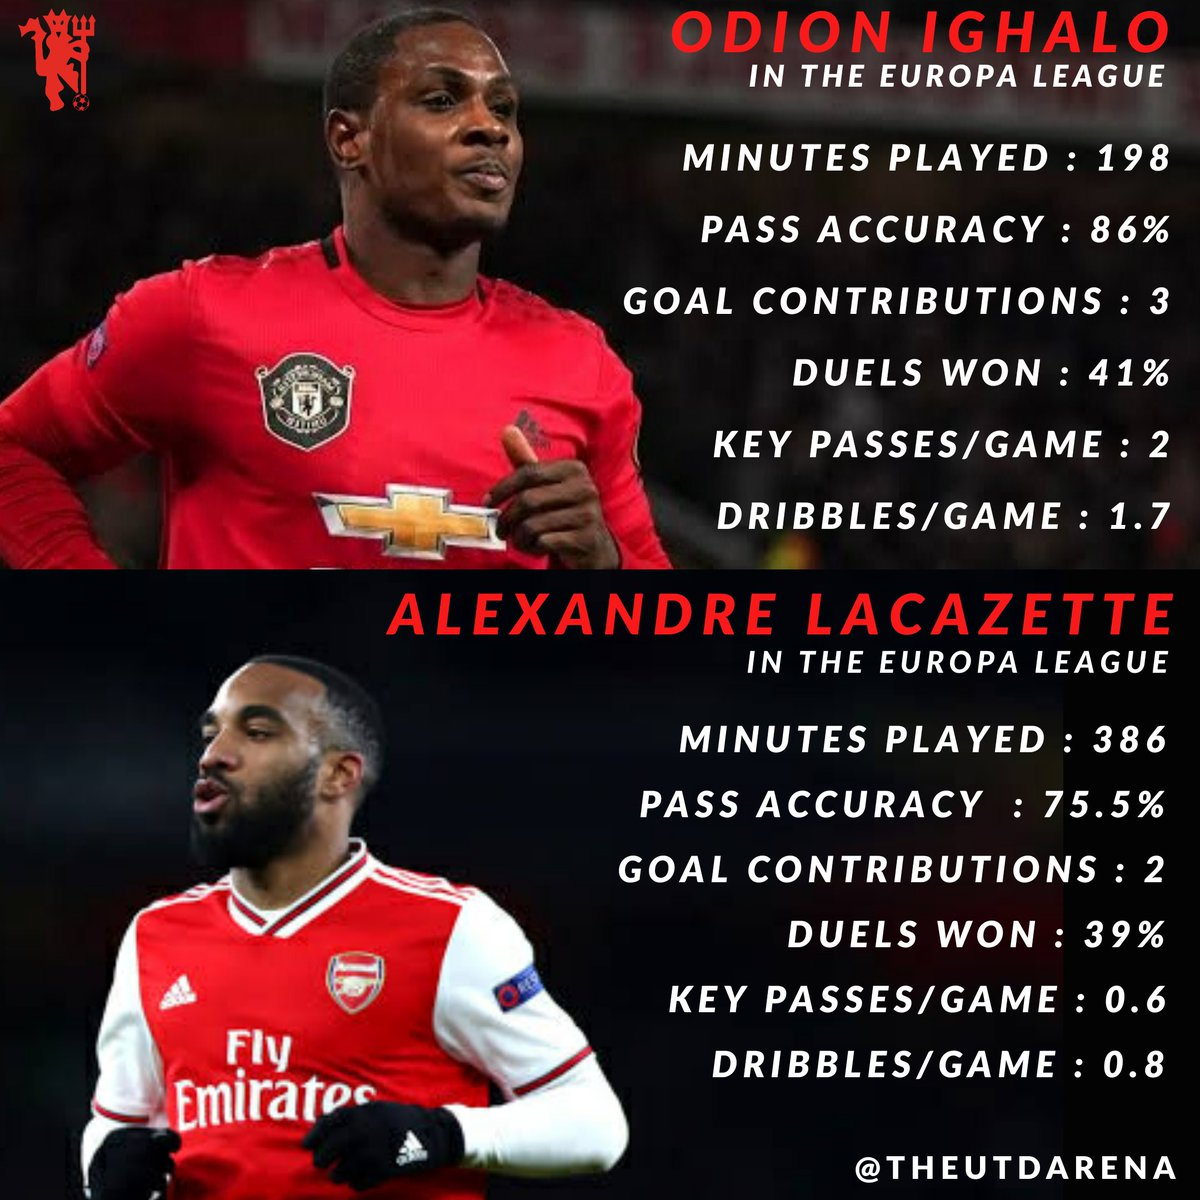 Reminder : This guy turned down big money offer from China just to be our back-up striker.🤷🏻♂️😍 And he is better than someone.... #MUFC #Ighalo #Transfers #Arsenal #ManchesterUnited #DB